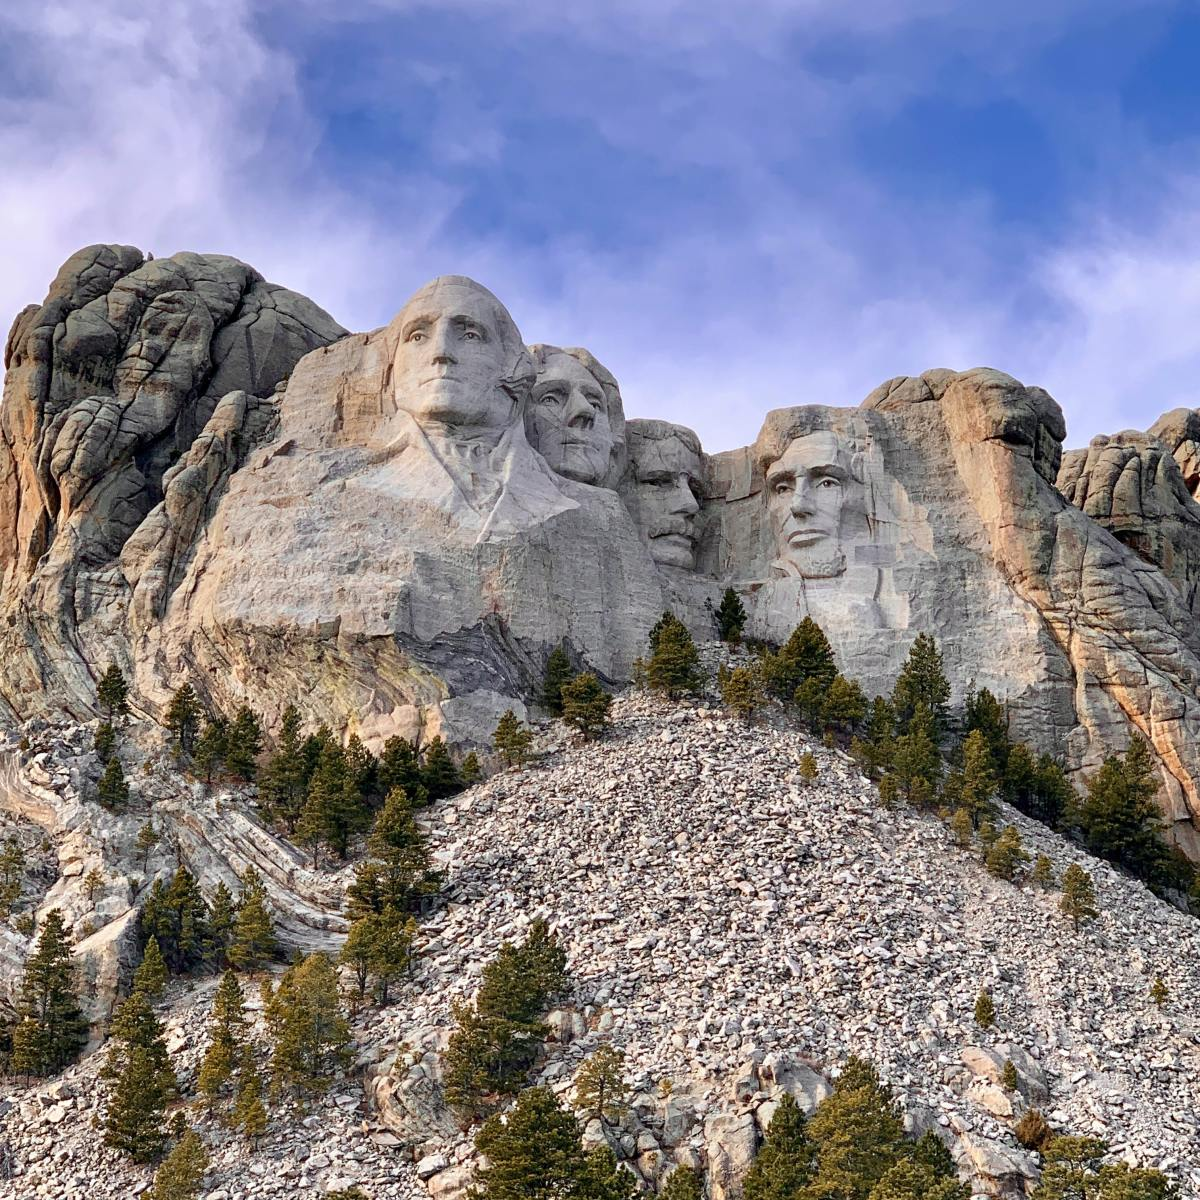 Mount Rushmore is the most famous attraction in the Black Hills, but it certainly isn't the only one! Here are a few other places you shouldn't miss on a visit to this region of South Dakota.